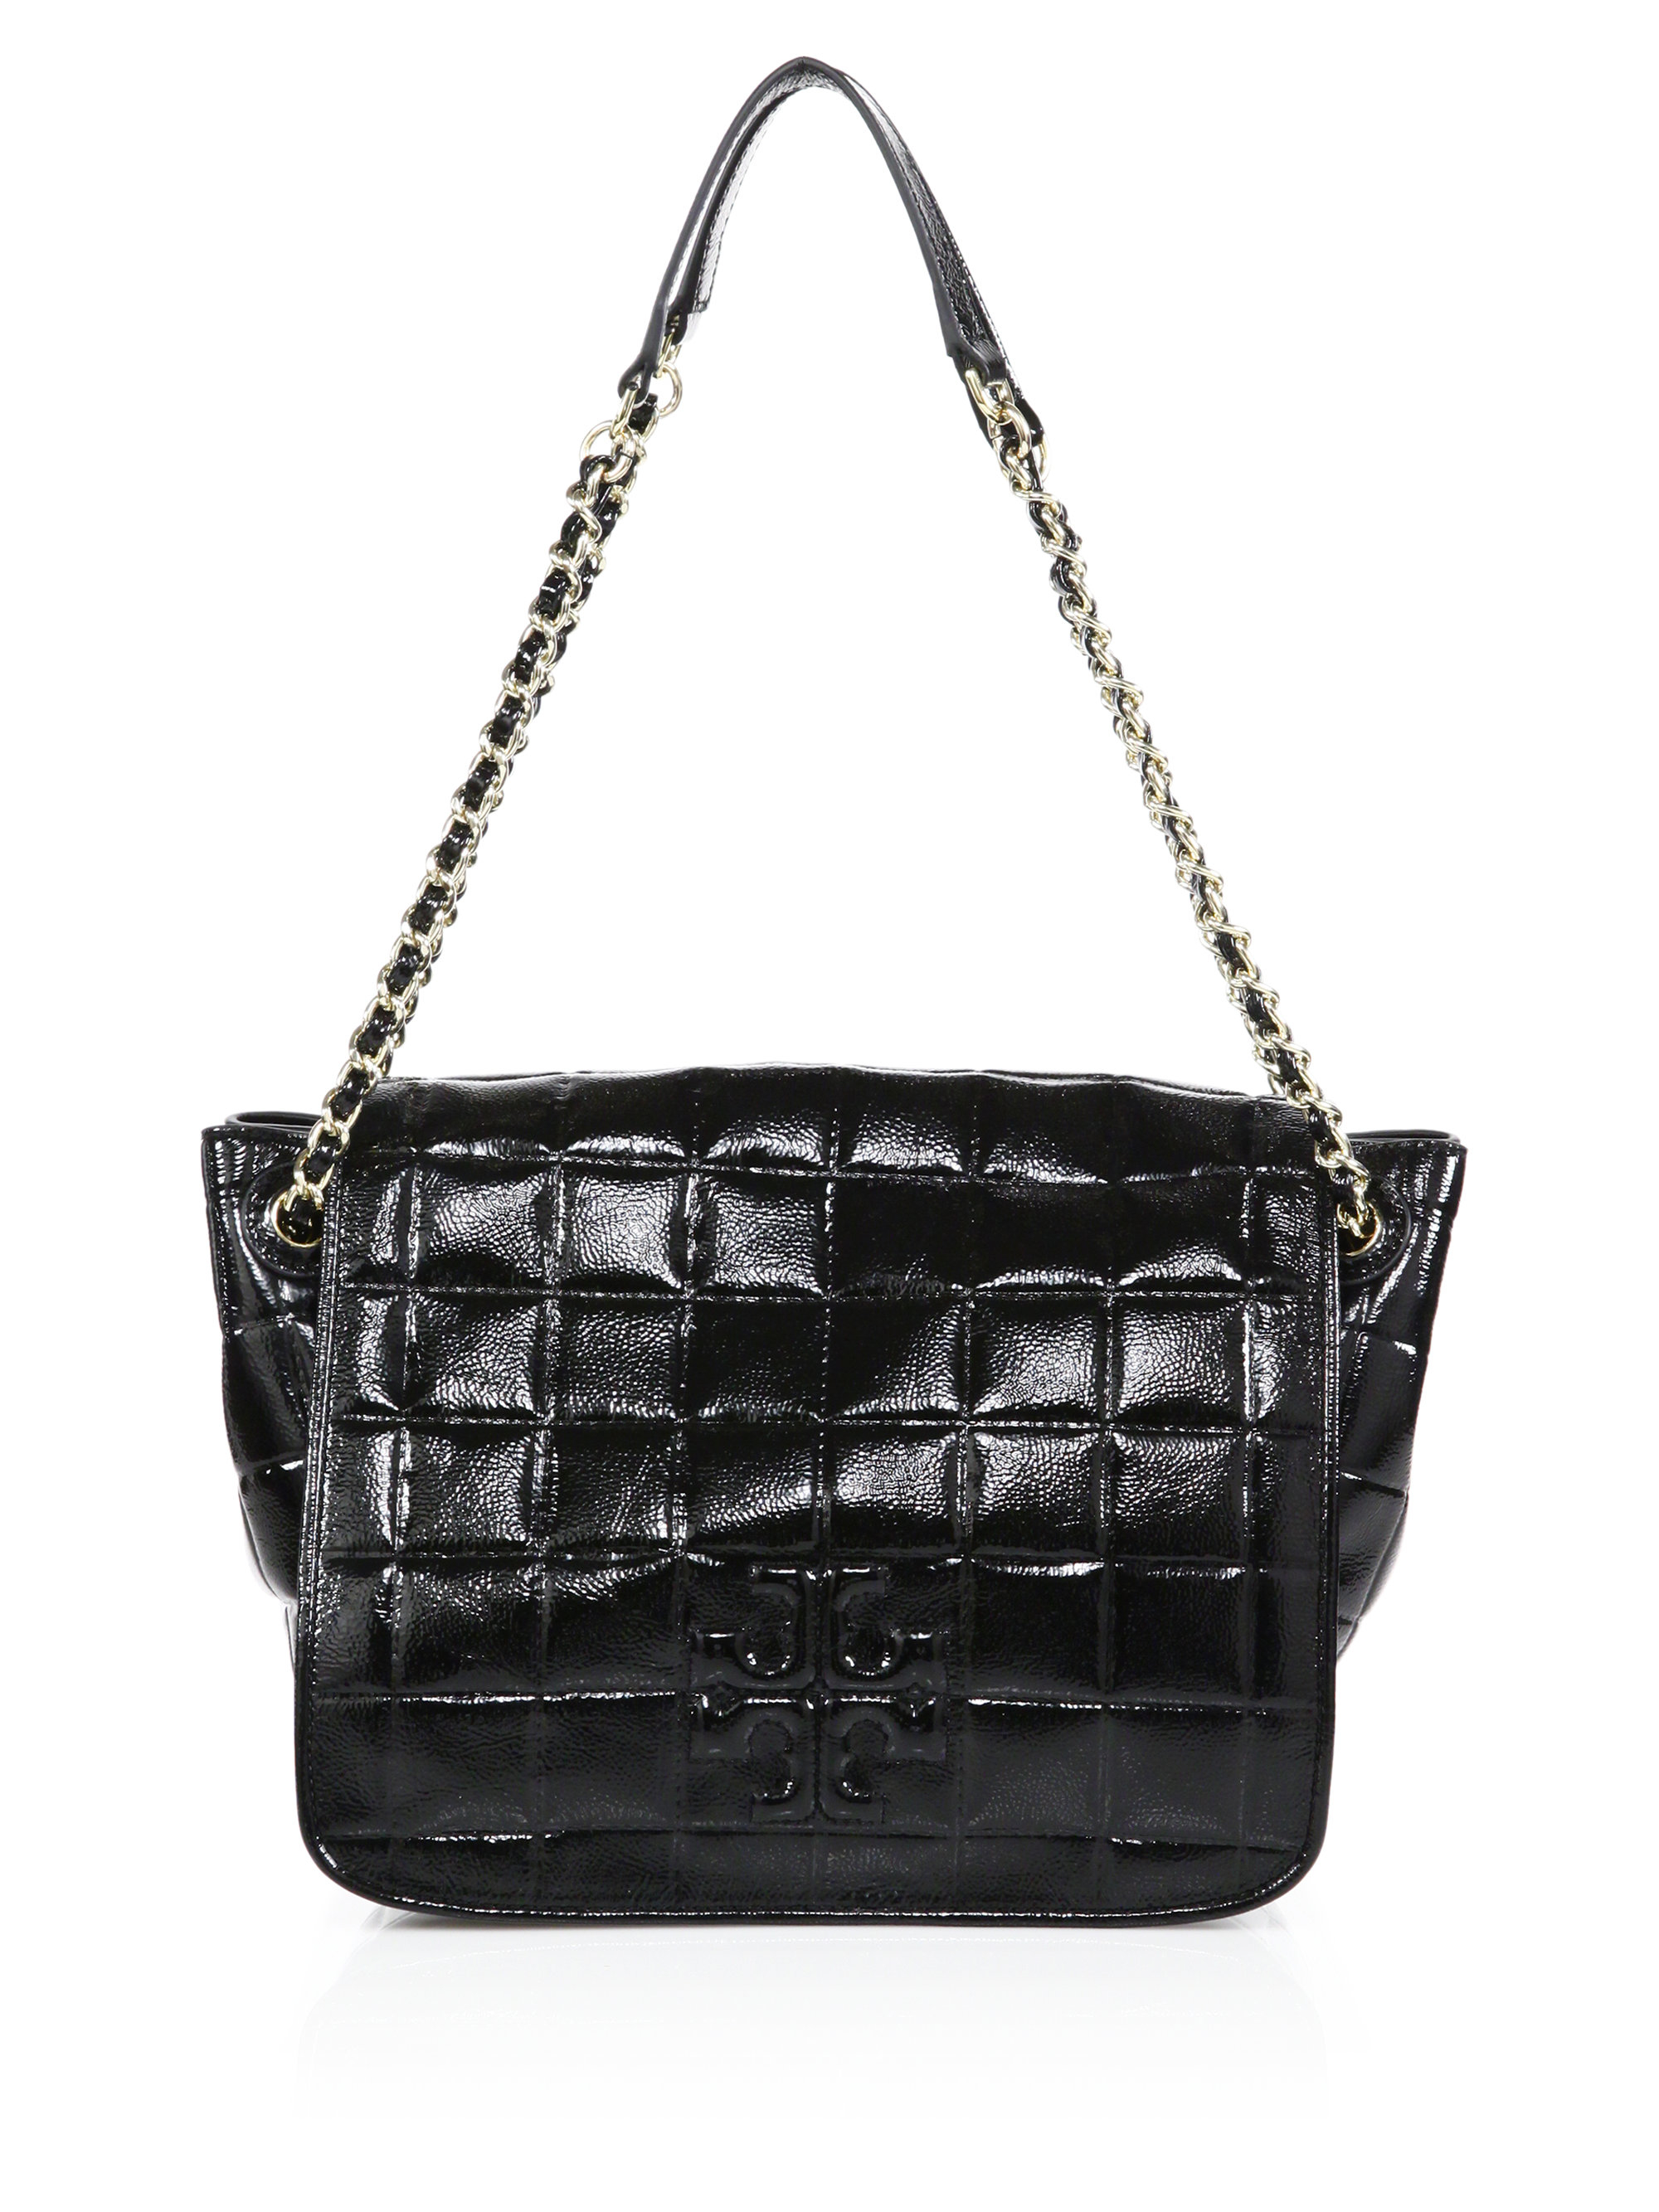 09656a8ca9d ... clearance lyst tory burch marion quilted patent leather shoulder bag in  black ac636 f8641